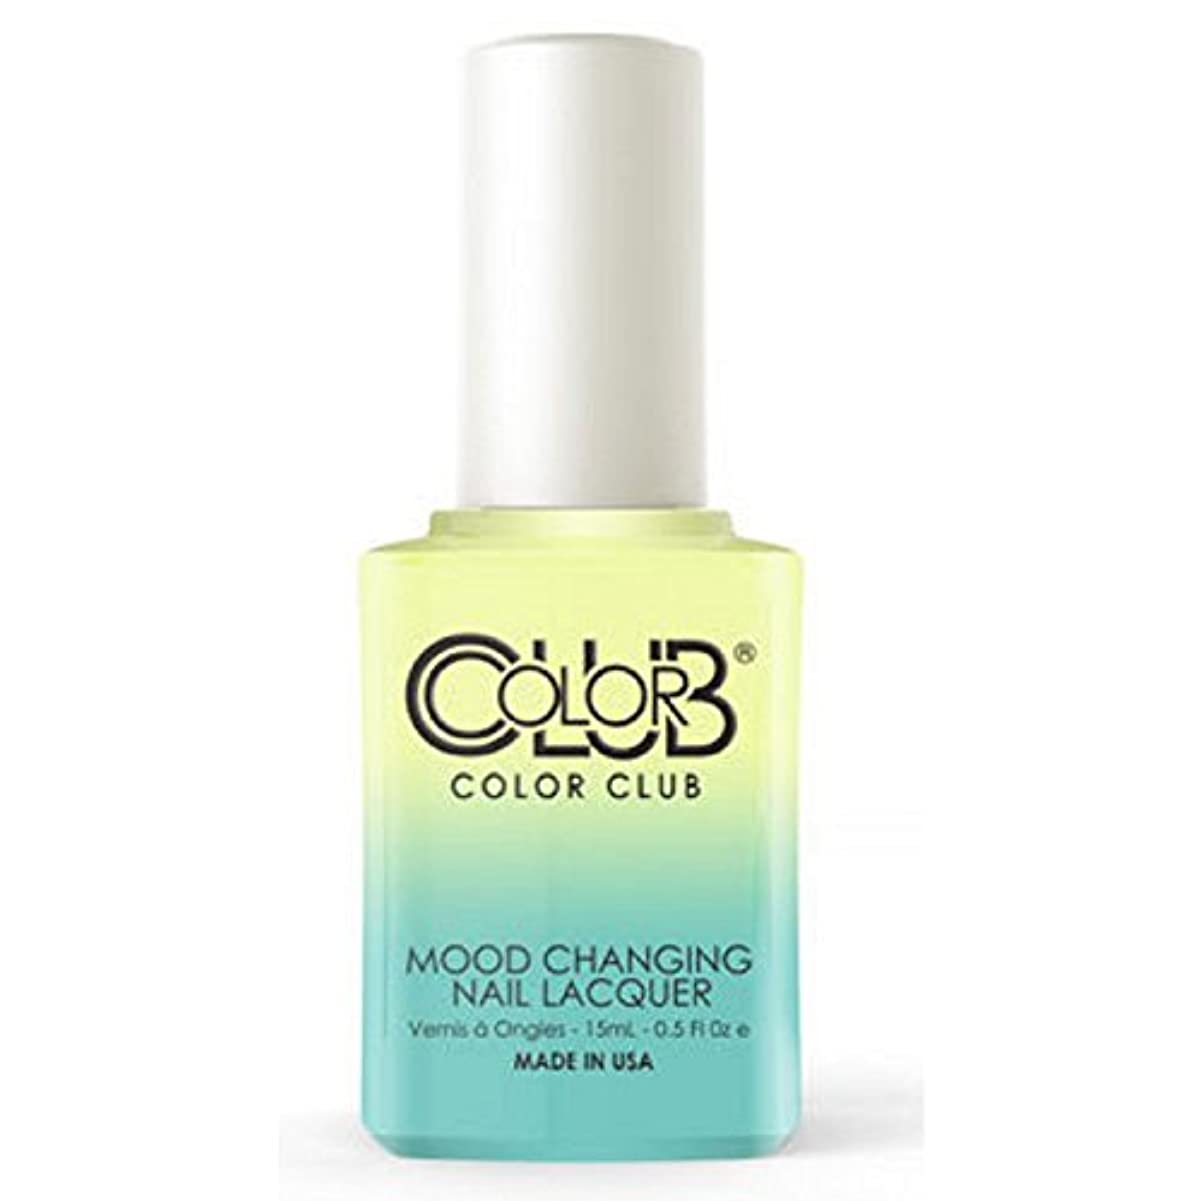 スナッチ貫通する薄汚いColor Club Mood Changing Nail Lacquer - Shine Theory - 15 mL / 0.5 fl oz